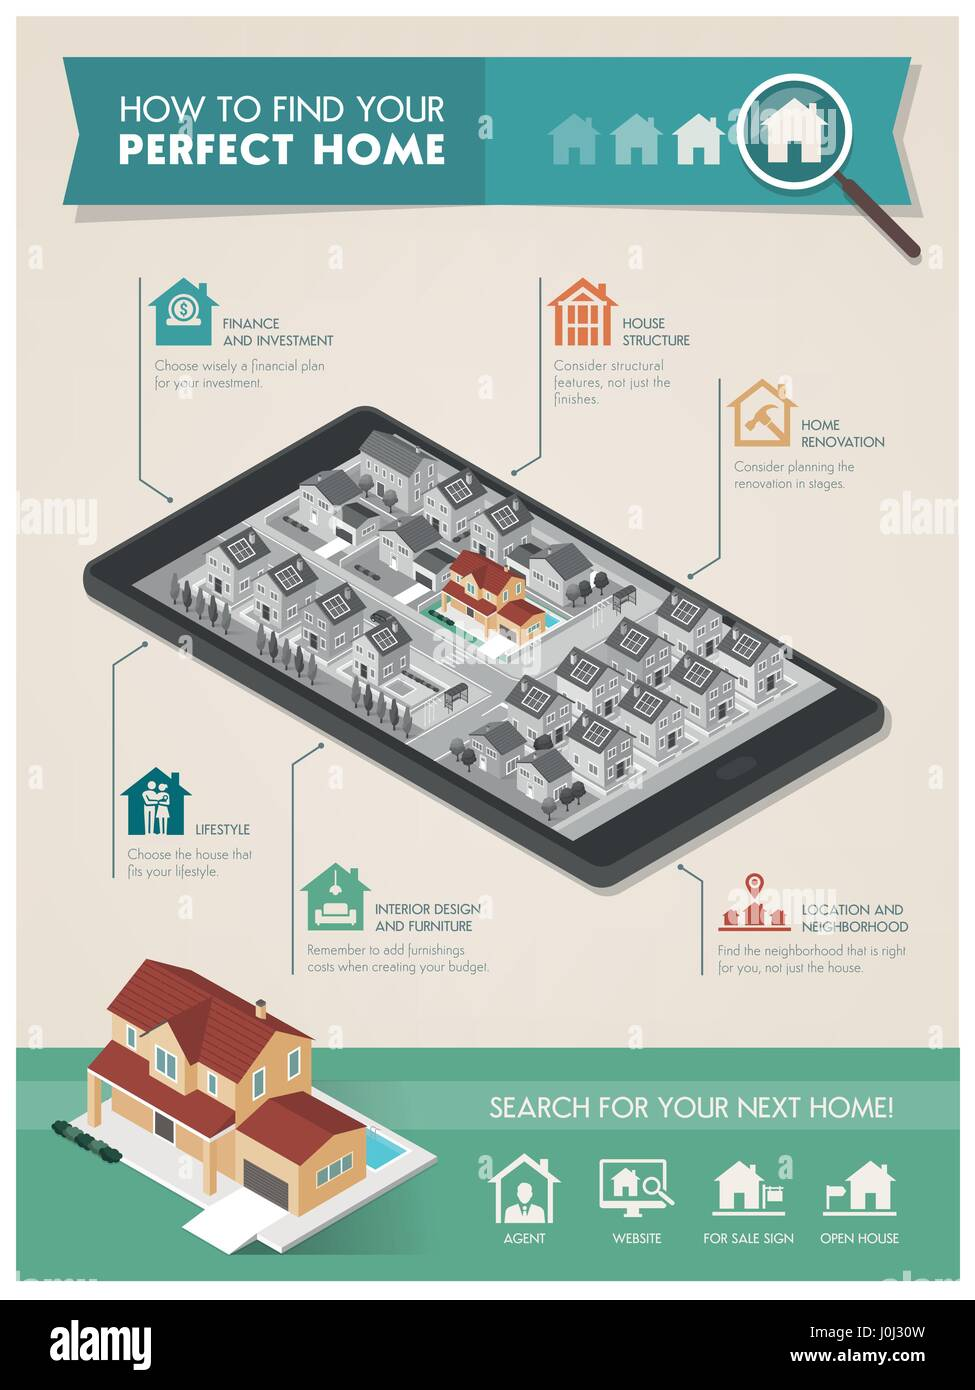 How to find your perfect home infographic residential for Find my perfect house